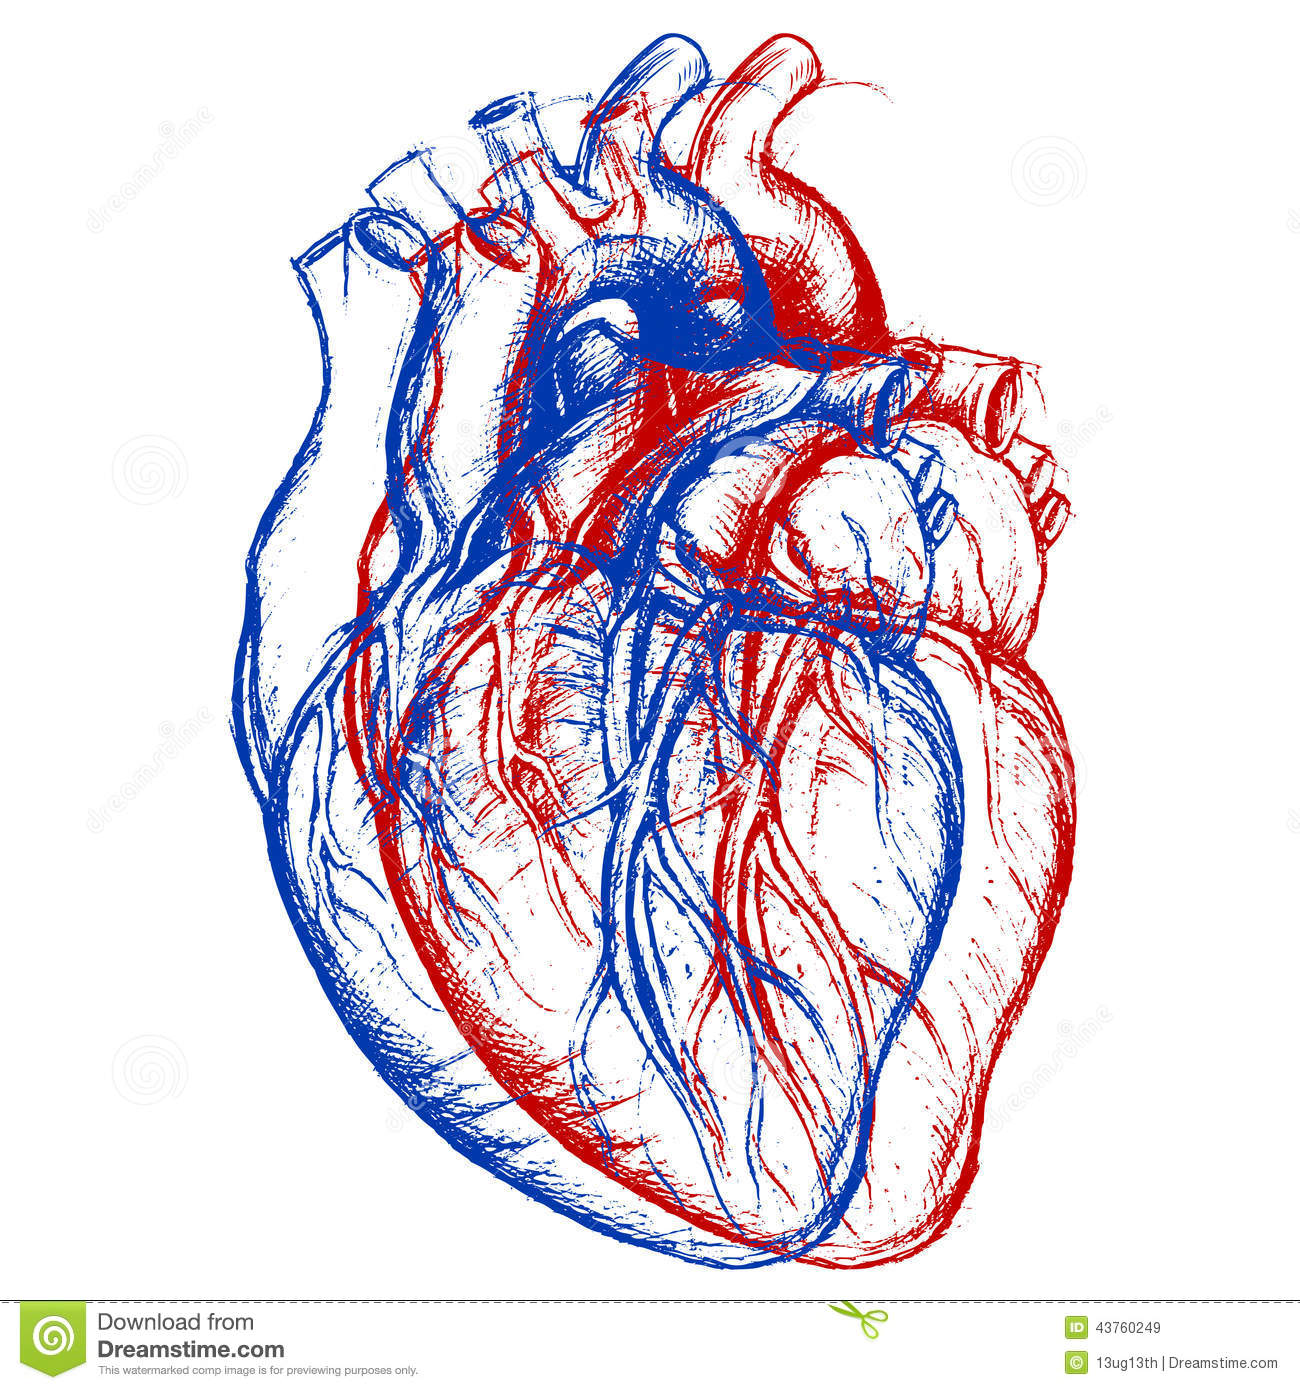 Drawing Lines Using Svg : Human heart d stock vector image